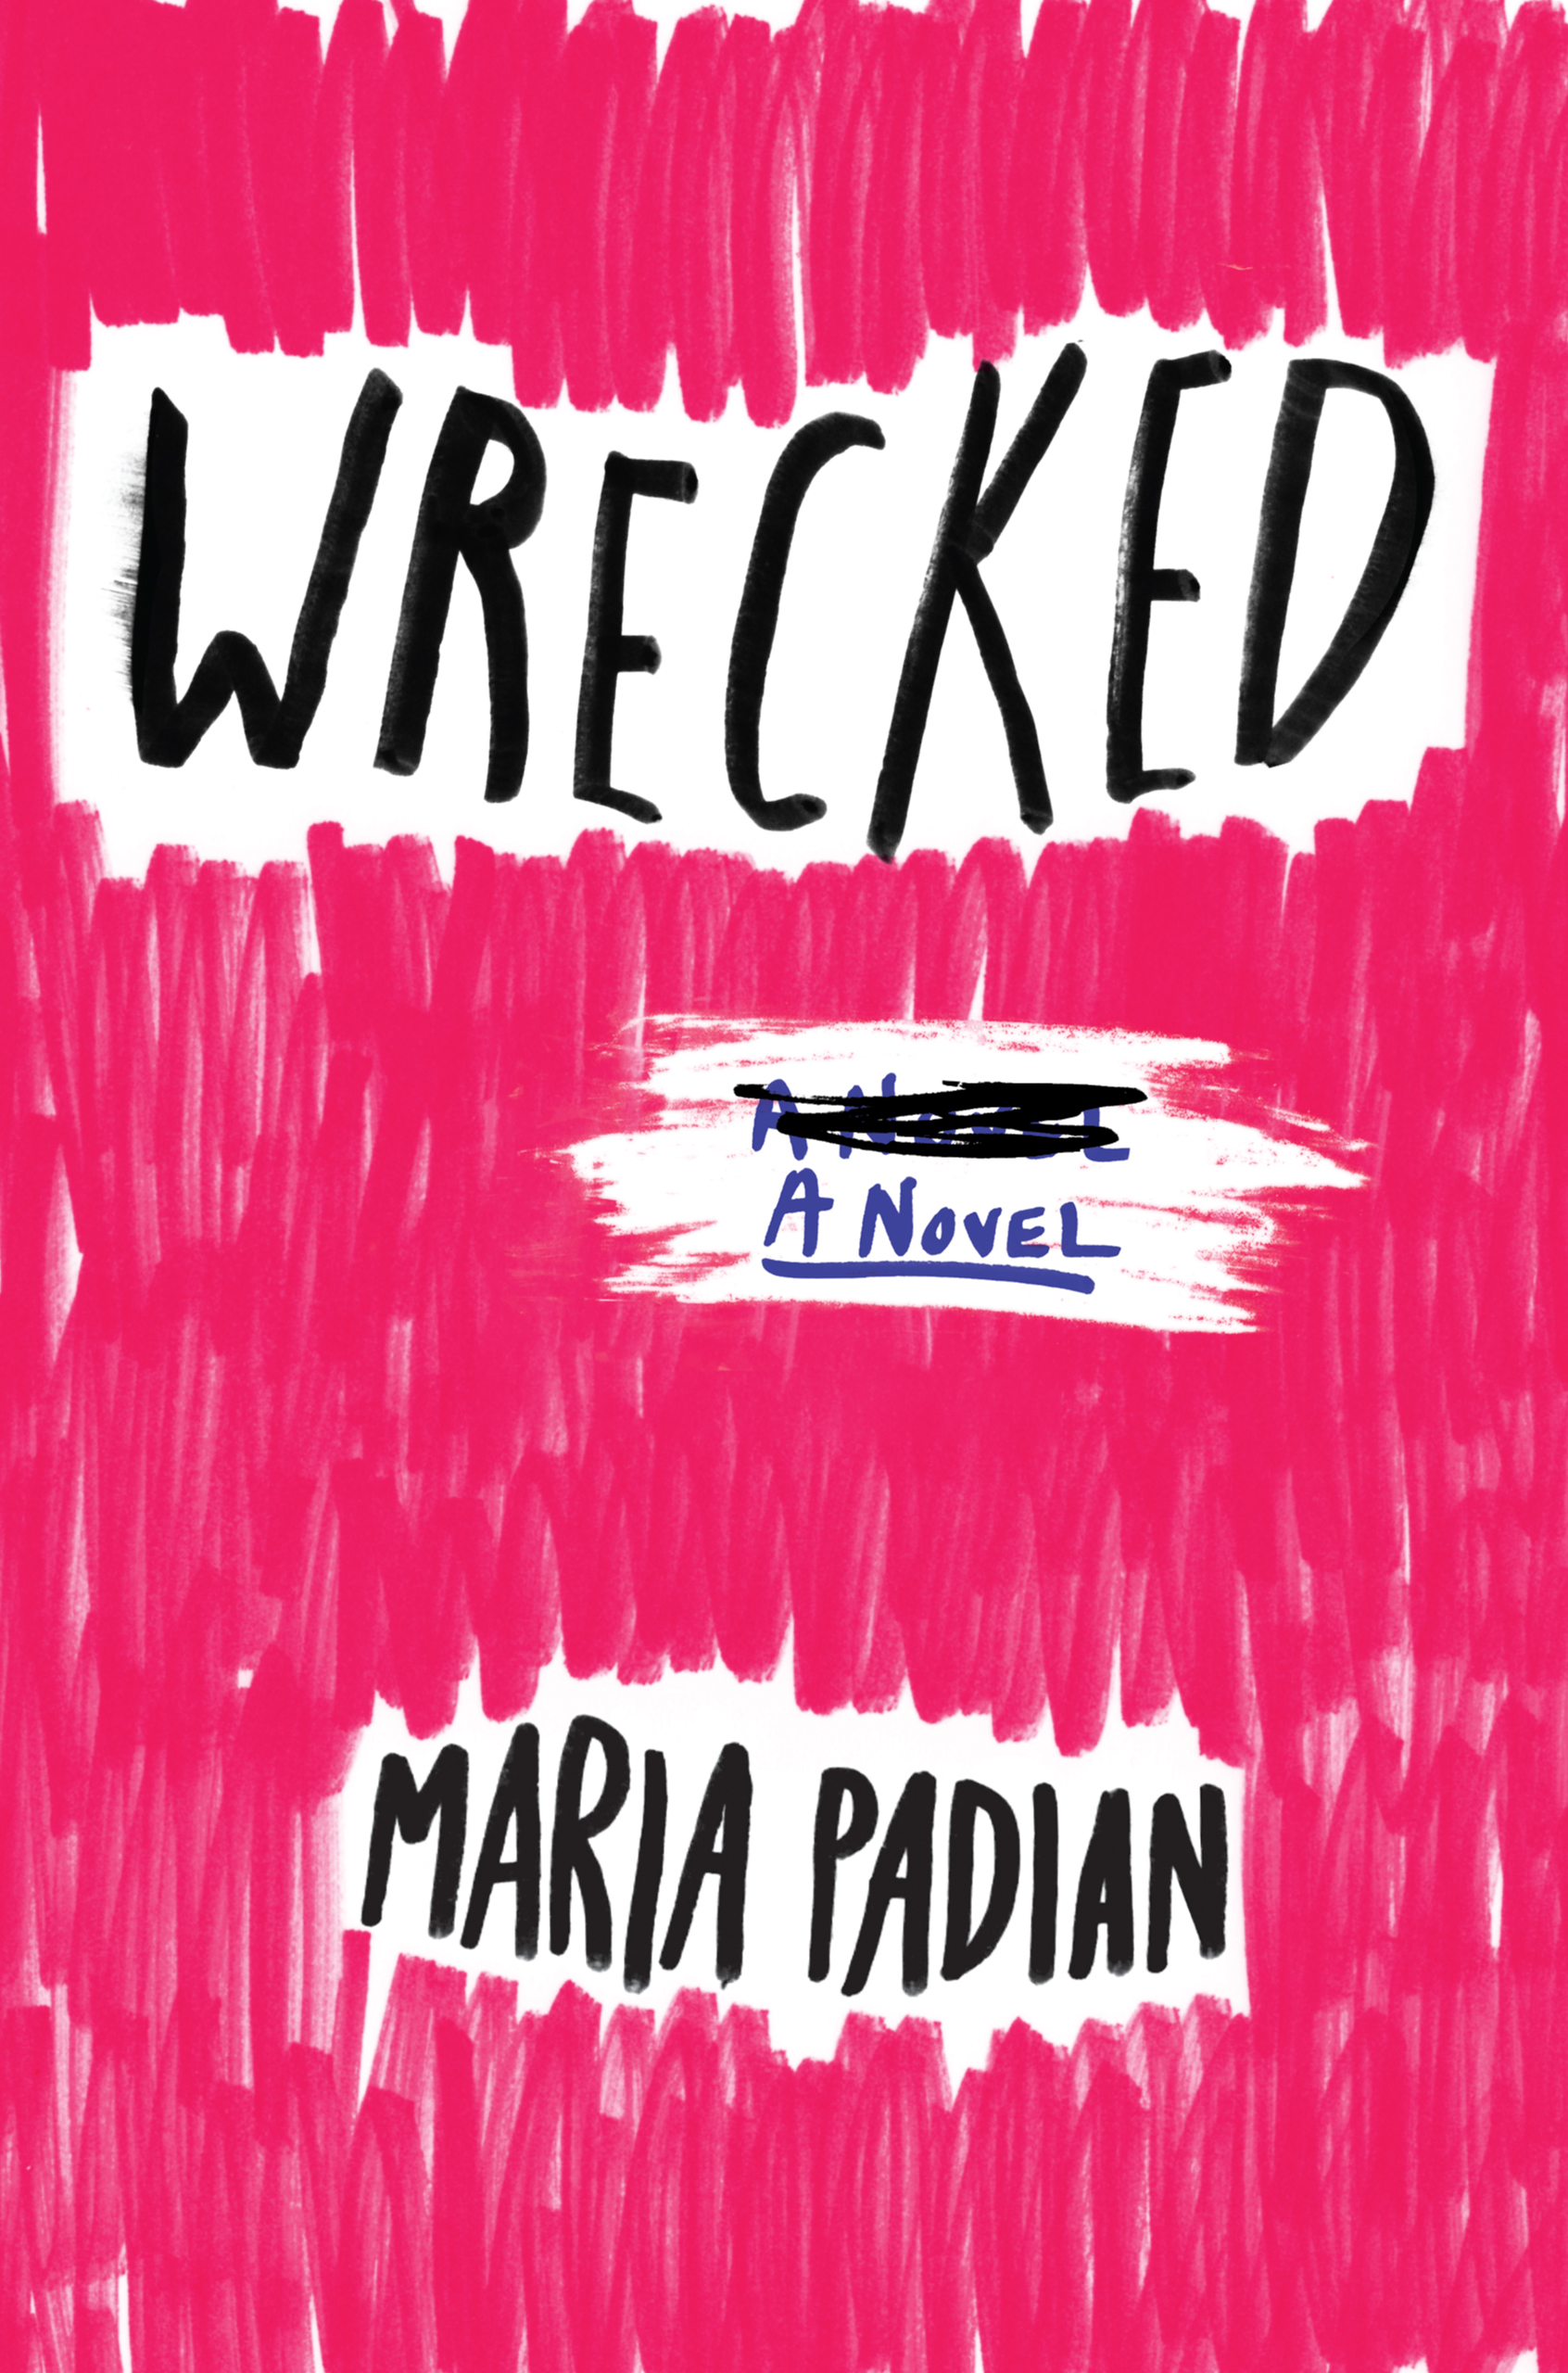 Wrecked , by Maria Padian